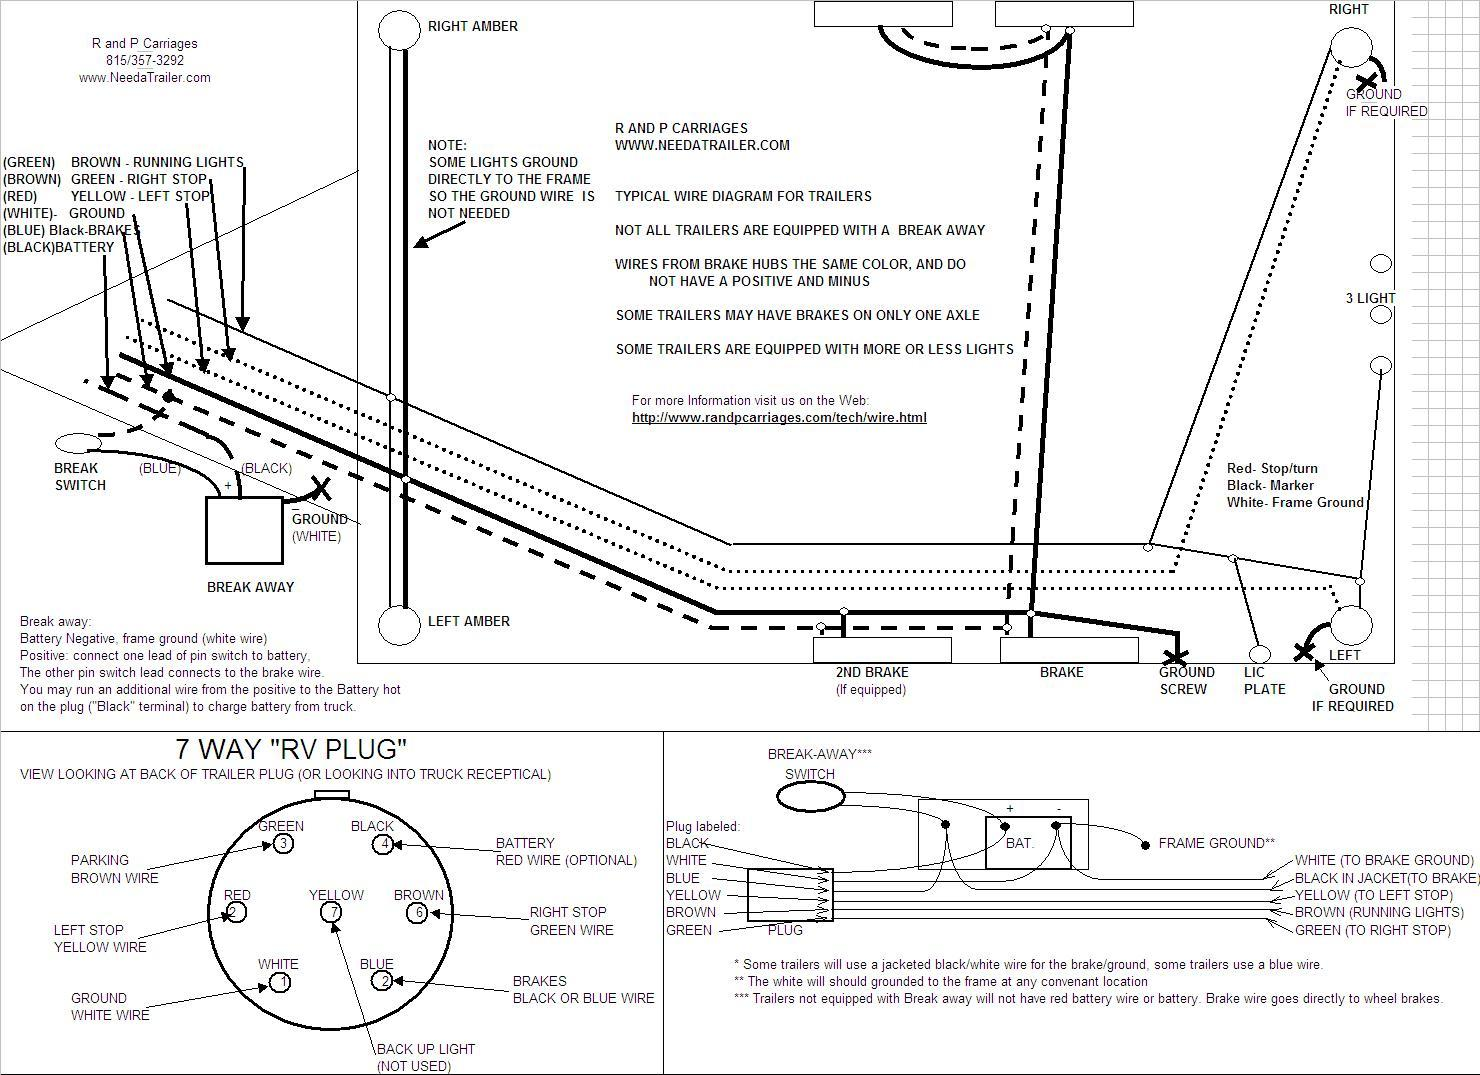 Brake controller installation instructions 7 way wiring diagram asfbconference2016 Gallery